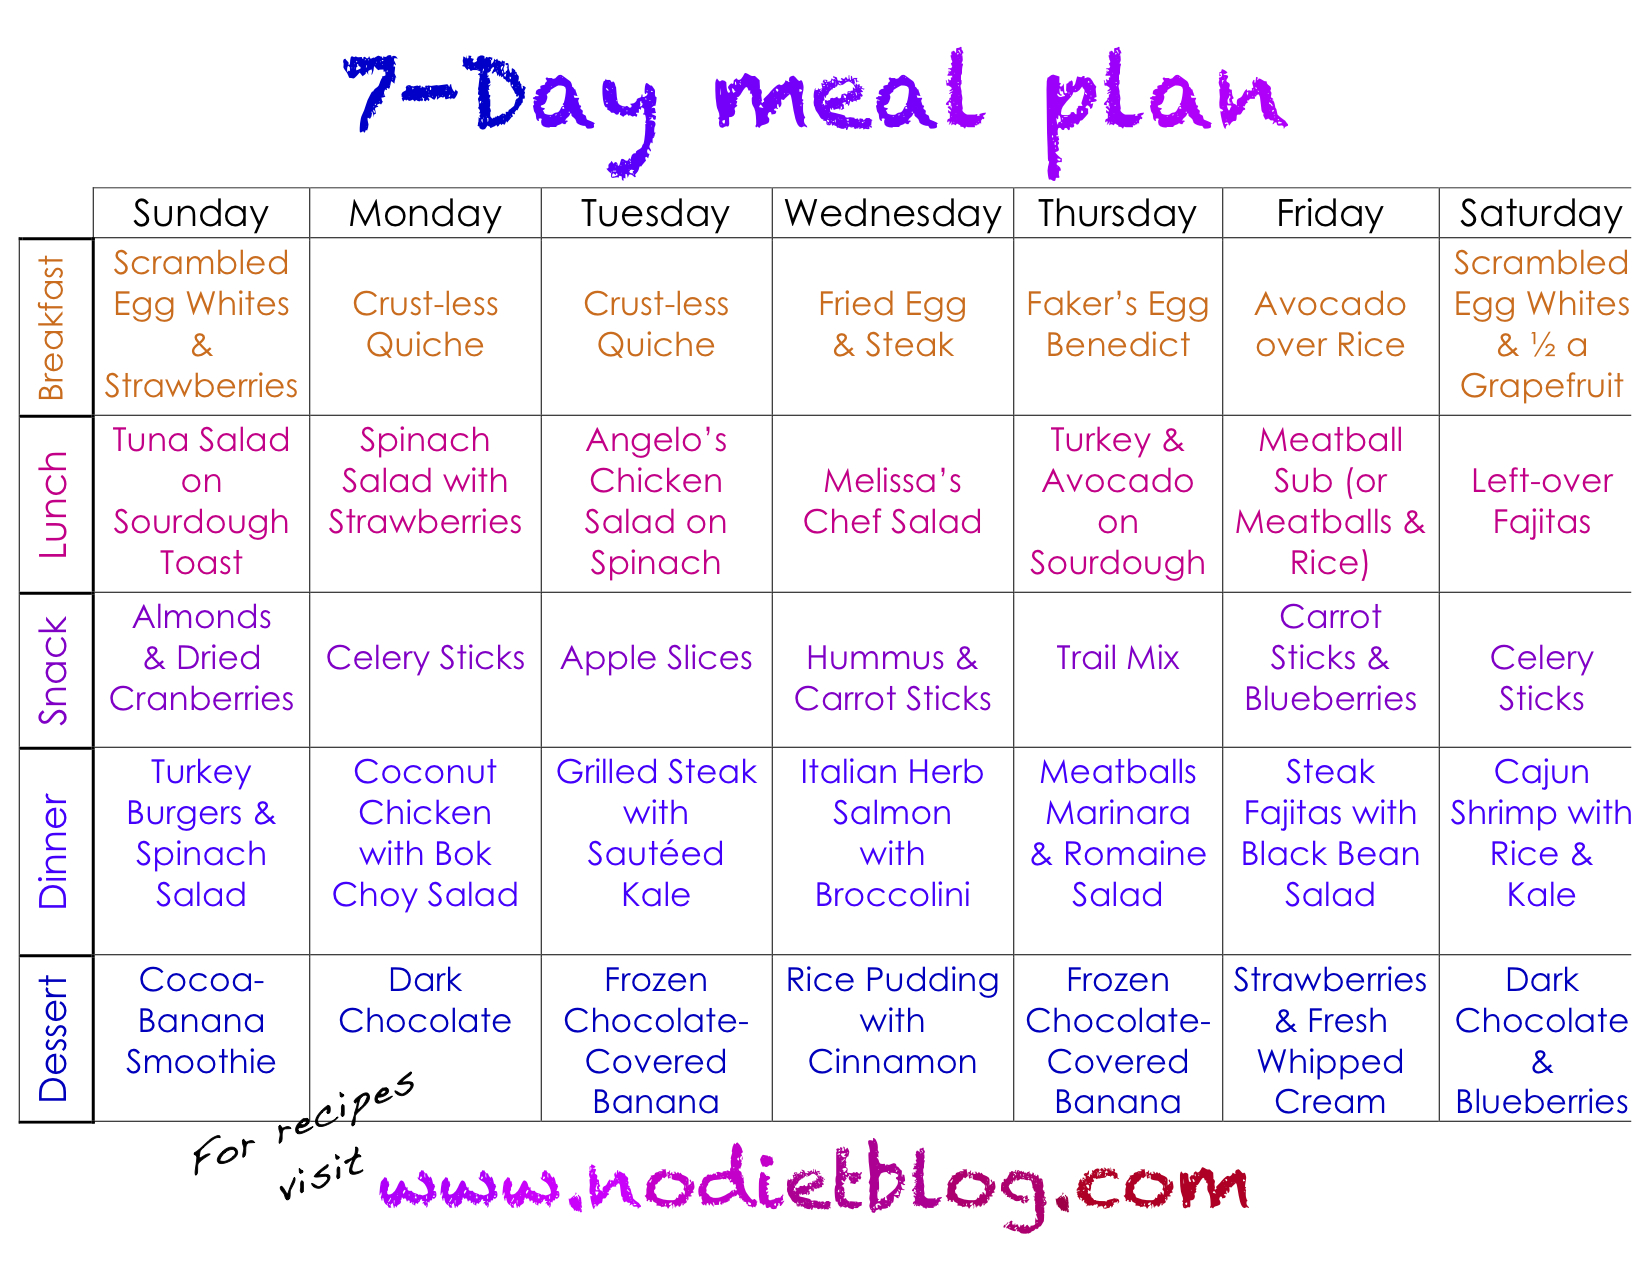 What's the Best Way to Lose Weight Fast? 7 day meal plan for diabetics